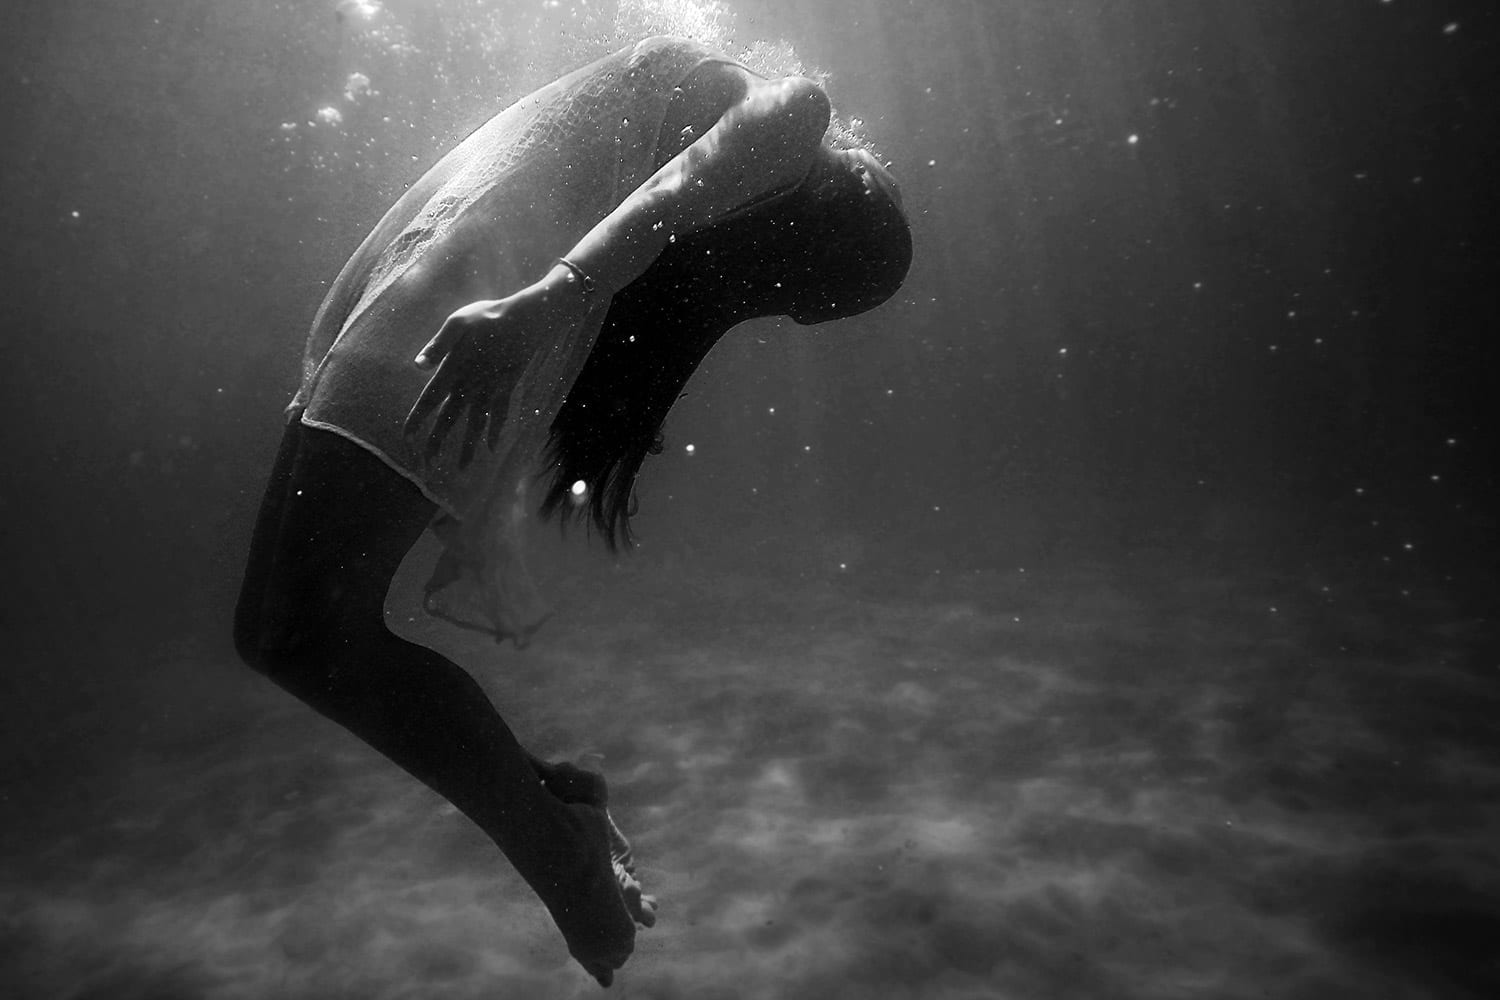 Do you sometimes feel like you are drowning?